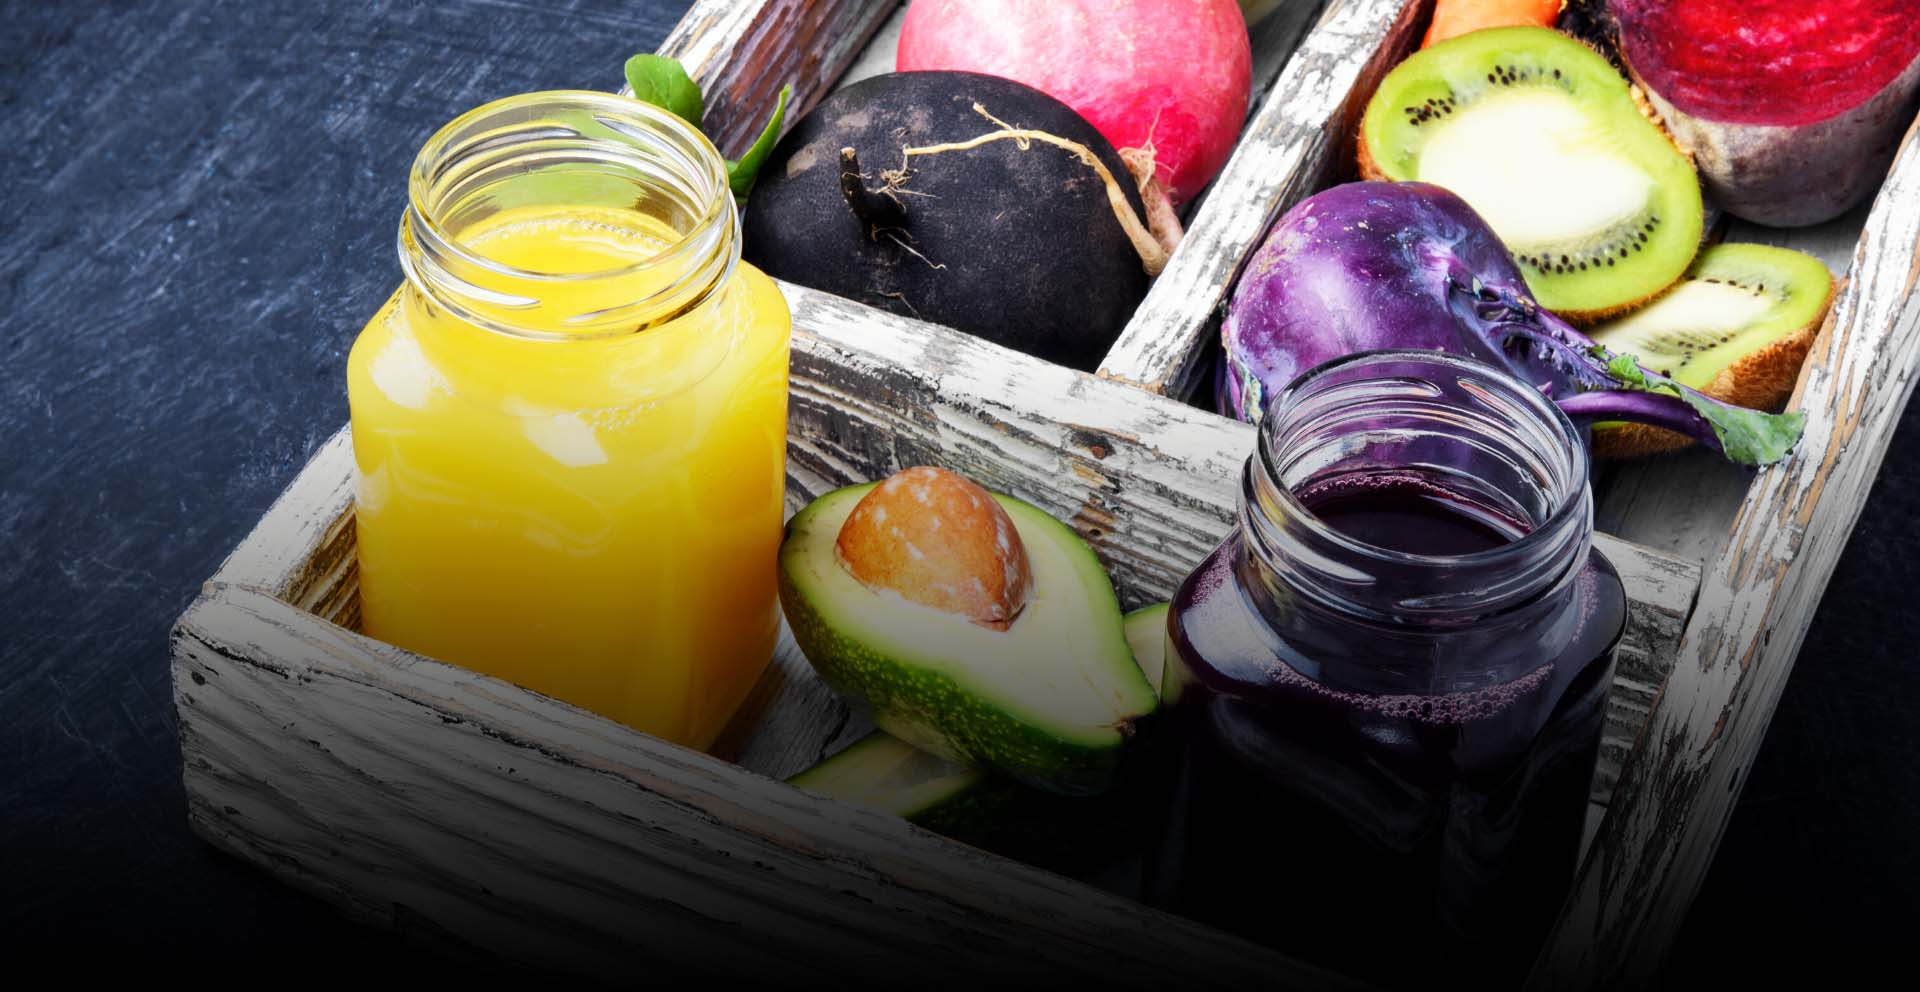 10 Healthy Fruit Juices You Can Easily Make at Home